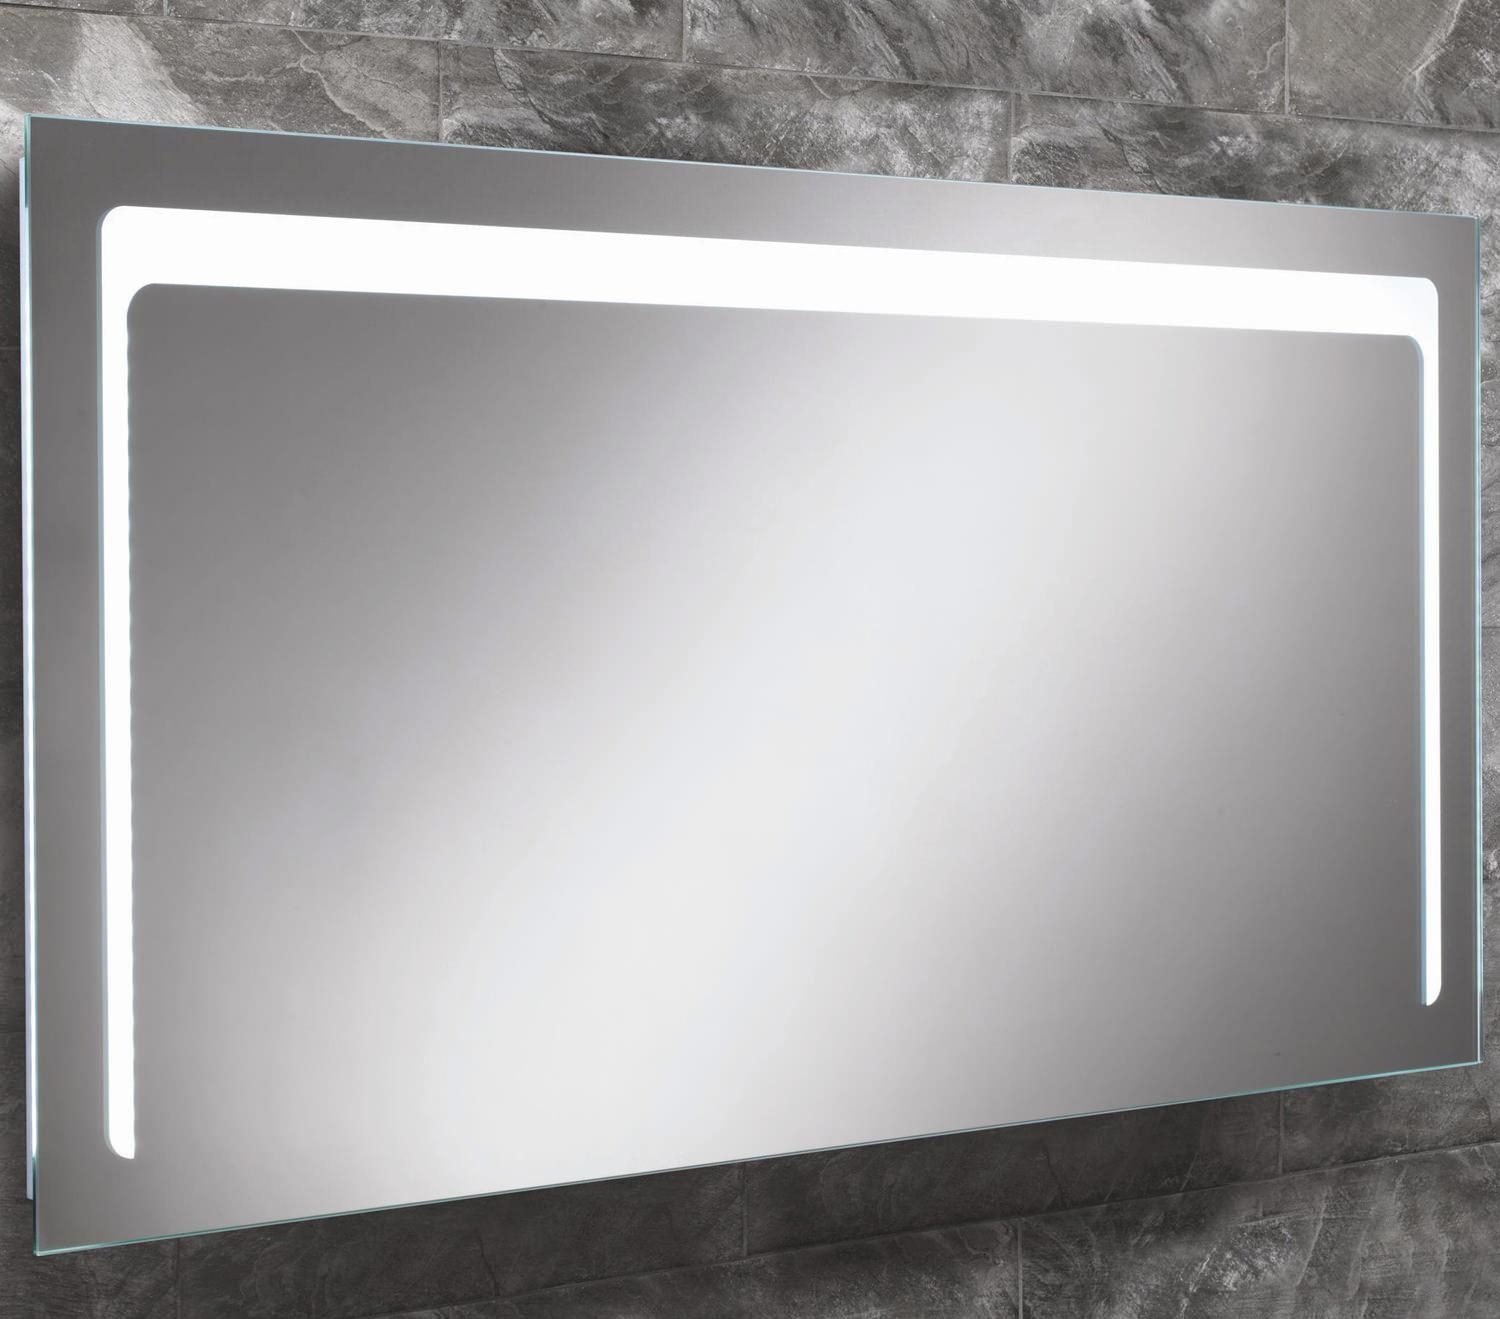 Hib Christa Steam Free Led Back Lit Mirror 1200X600Mm | 77413000 In Large Illuminated Mirror (Image 13 of 20)